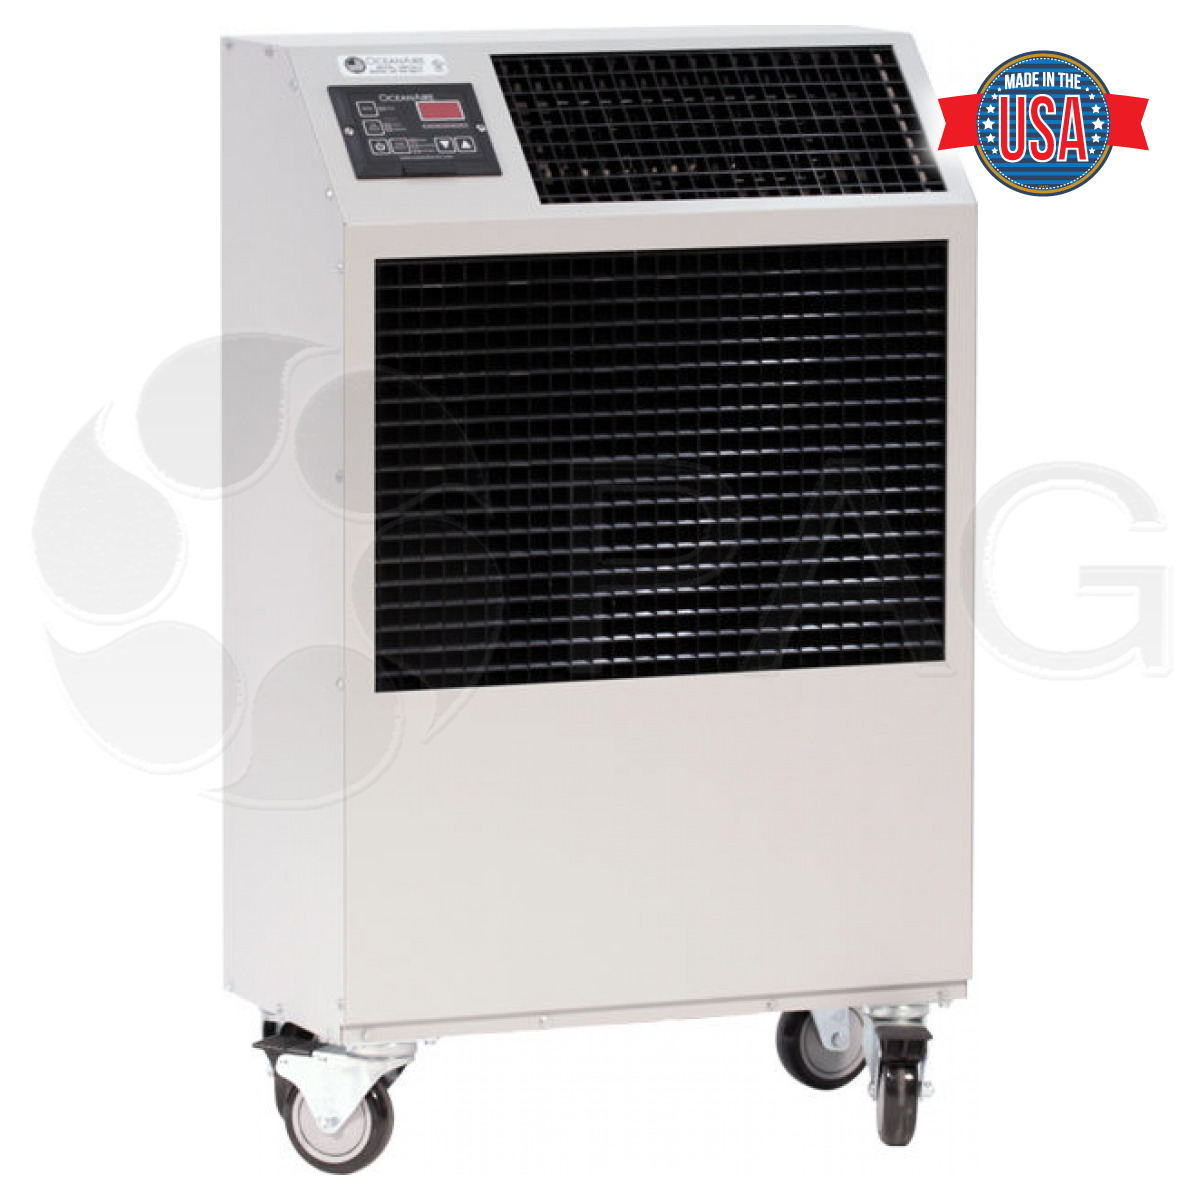 OceanAire OWC2412 water-cooled air conditioner